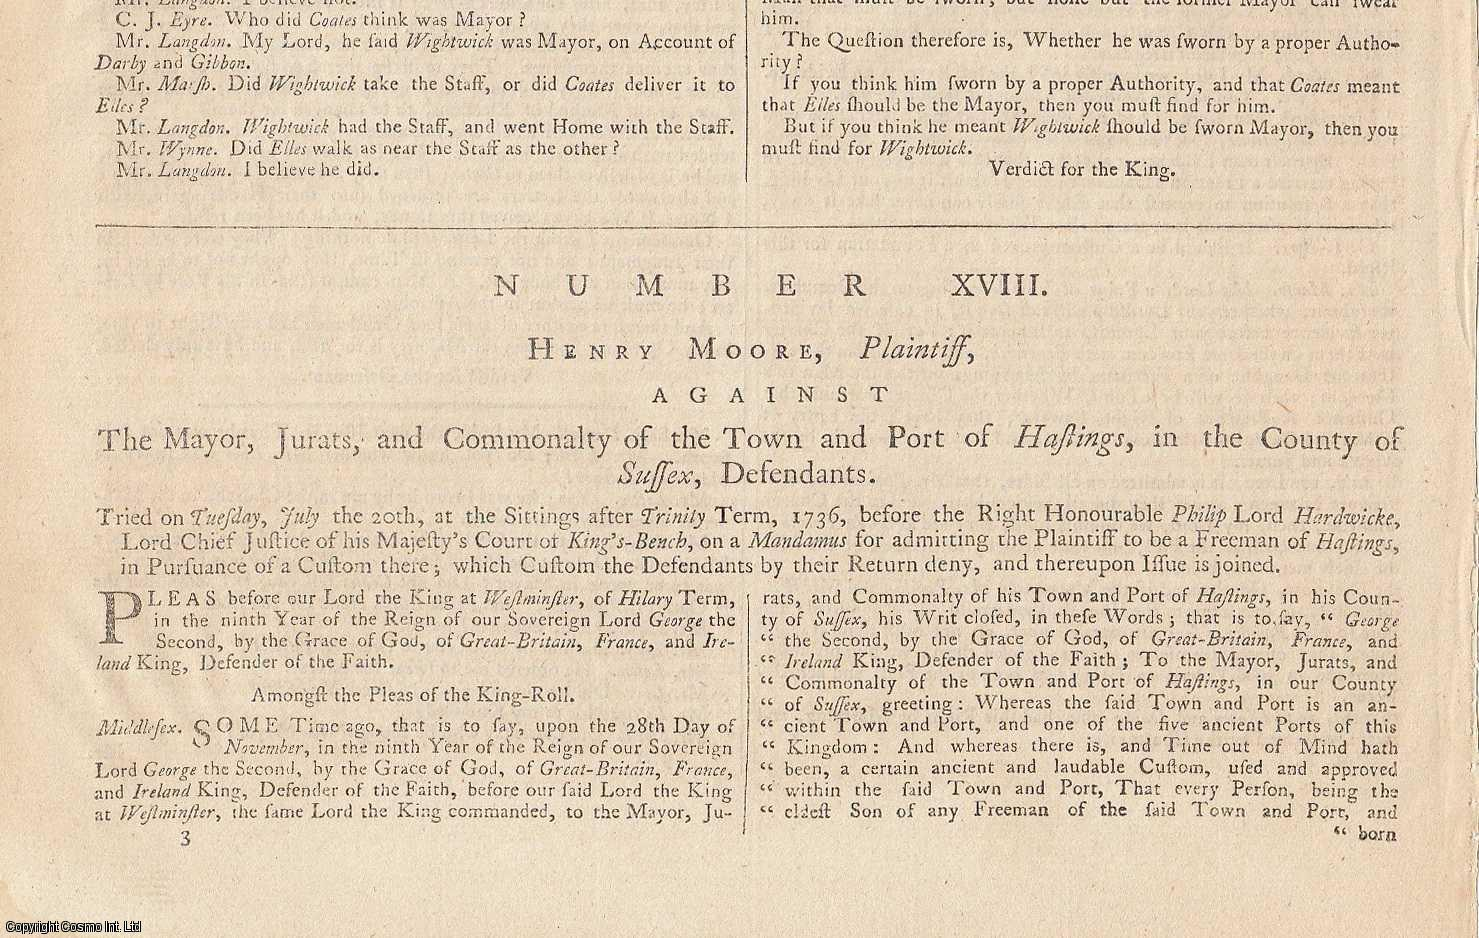 CINQUE PORTS.  Henry Moore, Plaintiff, against The Mayor, Jurats, and Community of the Town and Port of Hastings, in the County of Sussex, Defendants. Tuesday, July the 20th, 1736., [Trial].